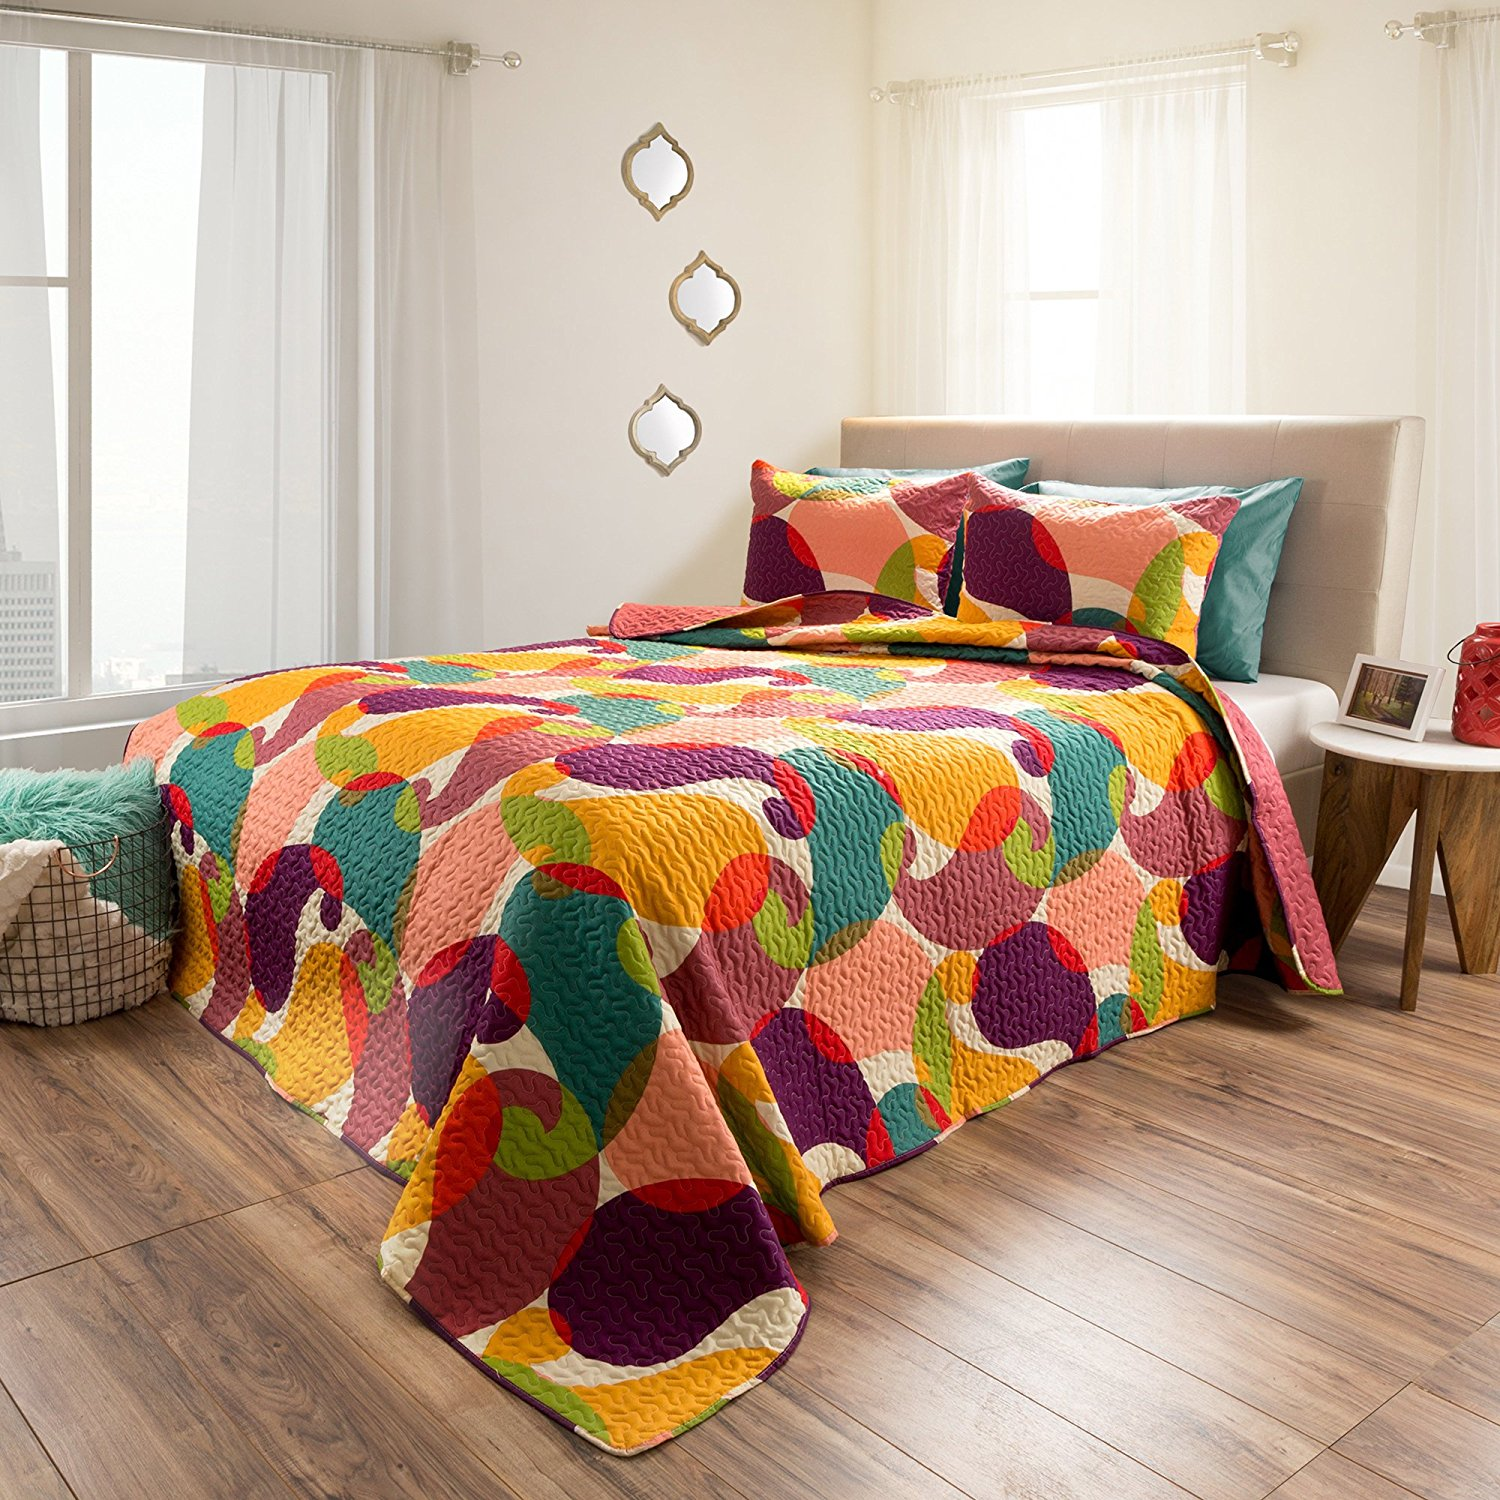 2 Piece Girls Medallion Geomtric Pattern Quilt Twin Set, Beautiful All Over Girly Boho Chic Colorful Abstract Artistic Embossed Motif Pattern, Hippie Indie Style, Vibrant Colors, Polyester